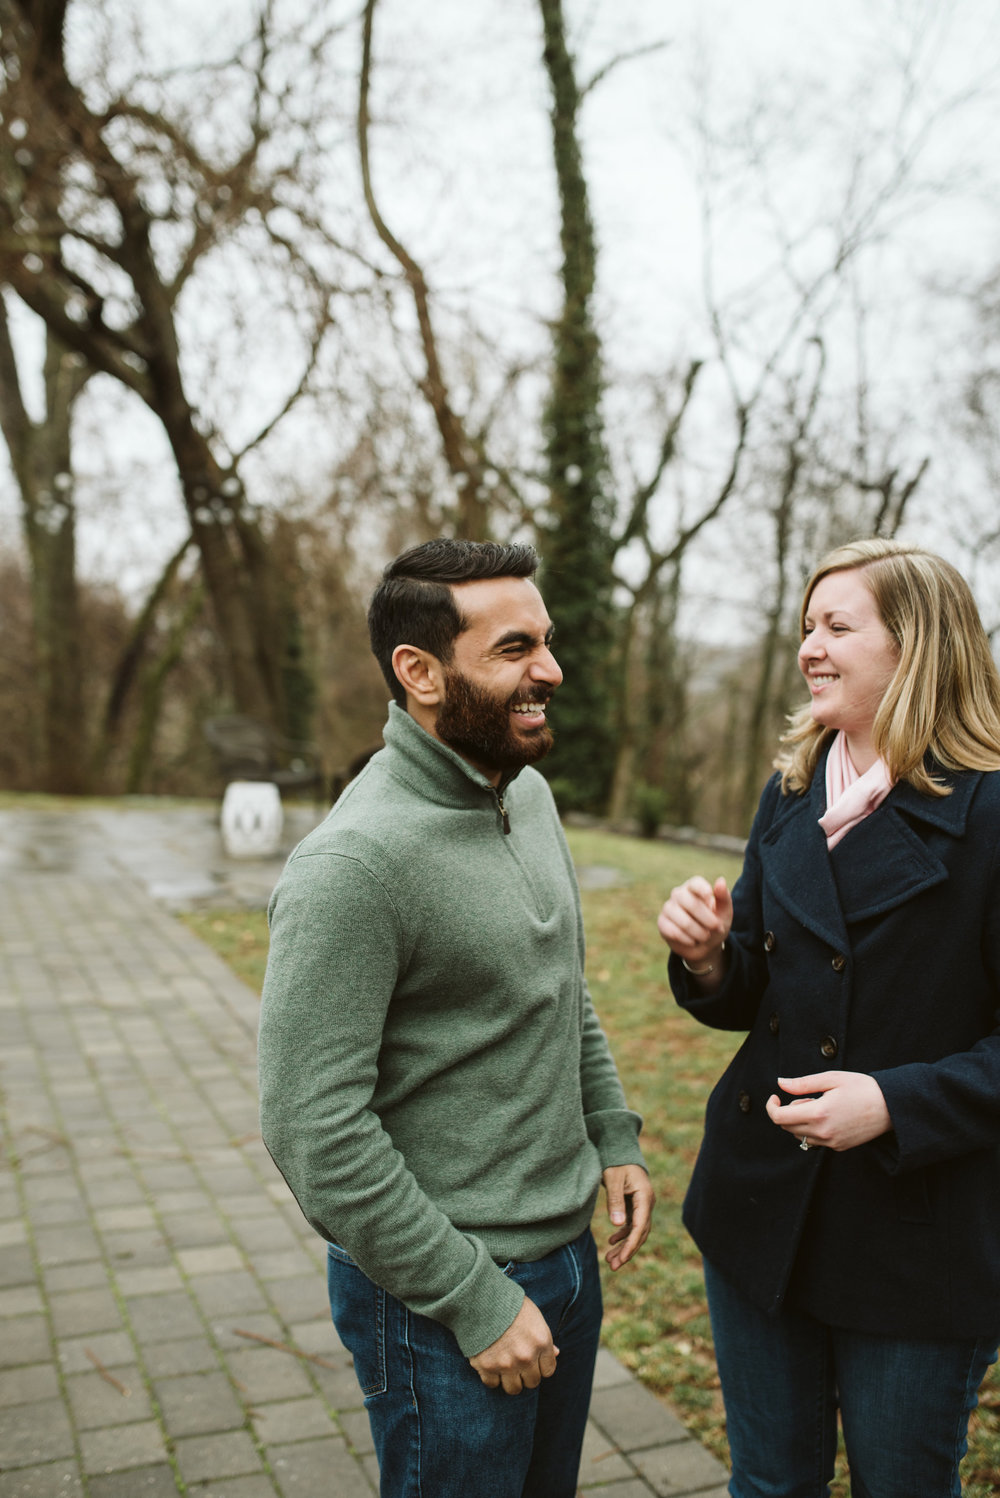 Engagement Photos, Rainy, Ellicott City, Maryland Wedding Photographer, Winter, Overhills Mansion, Indian American, Historical, Classic, Traditional, Outdoor, Laughing, Bride and Groom having fun